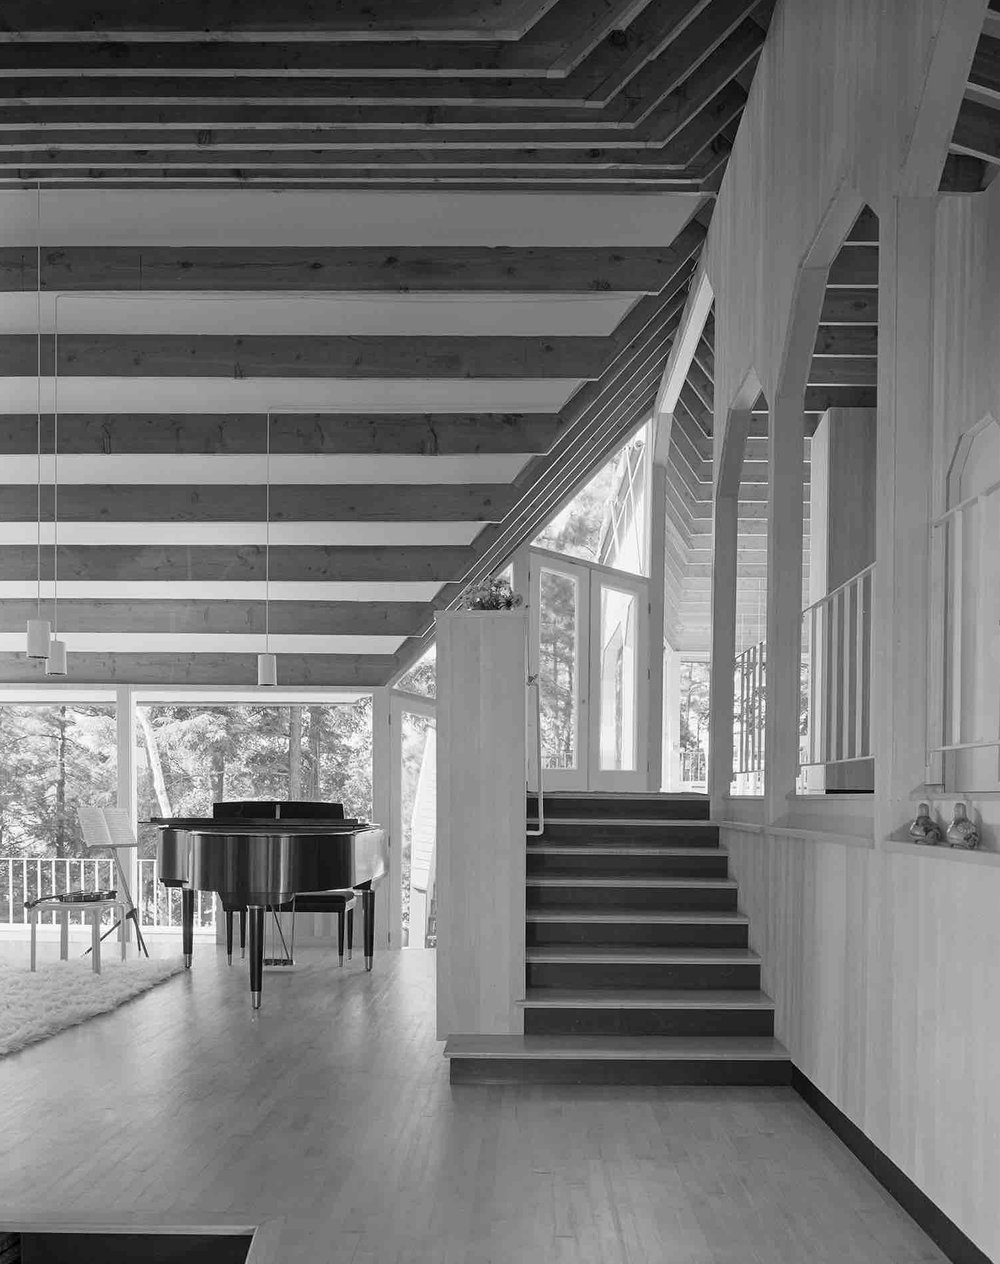 S.O.M.,Tangerman Summer House (Lake Rousseau, Canada) 1965.